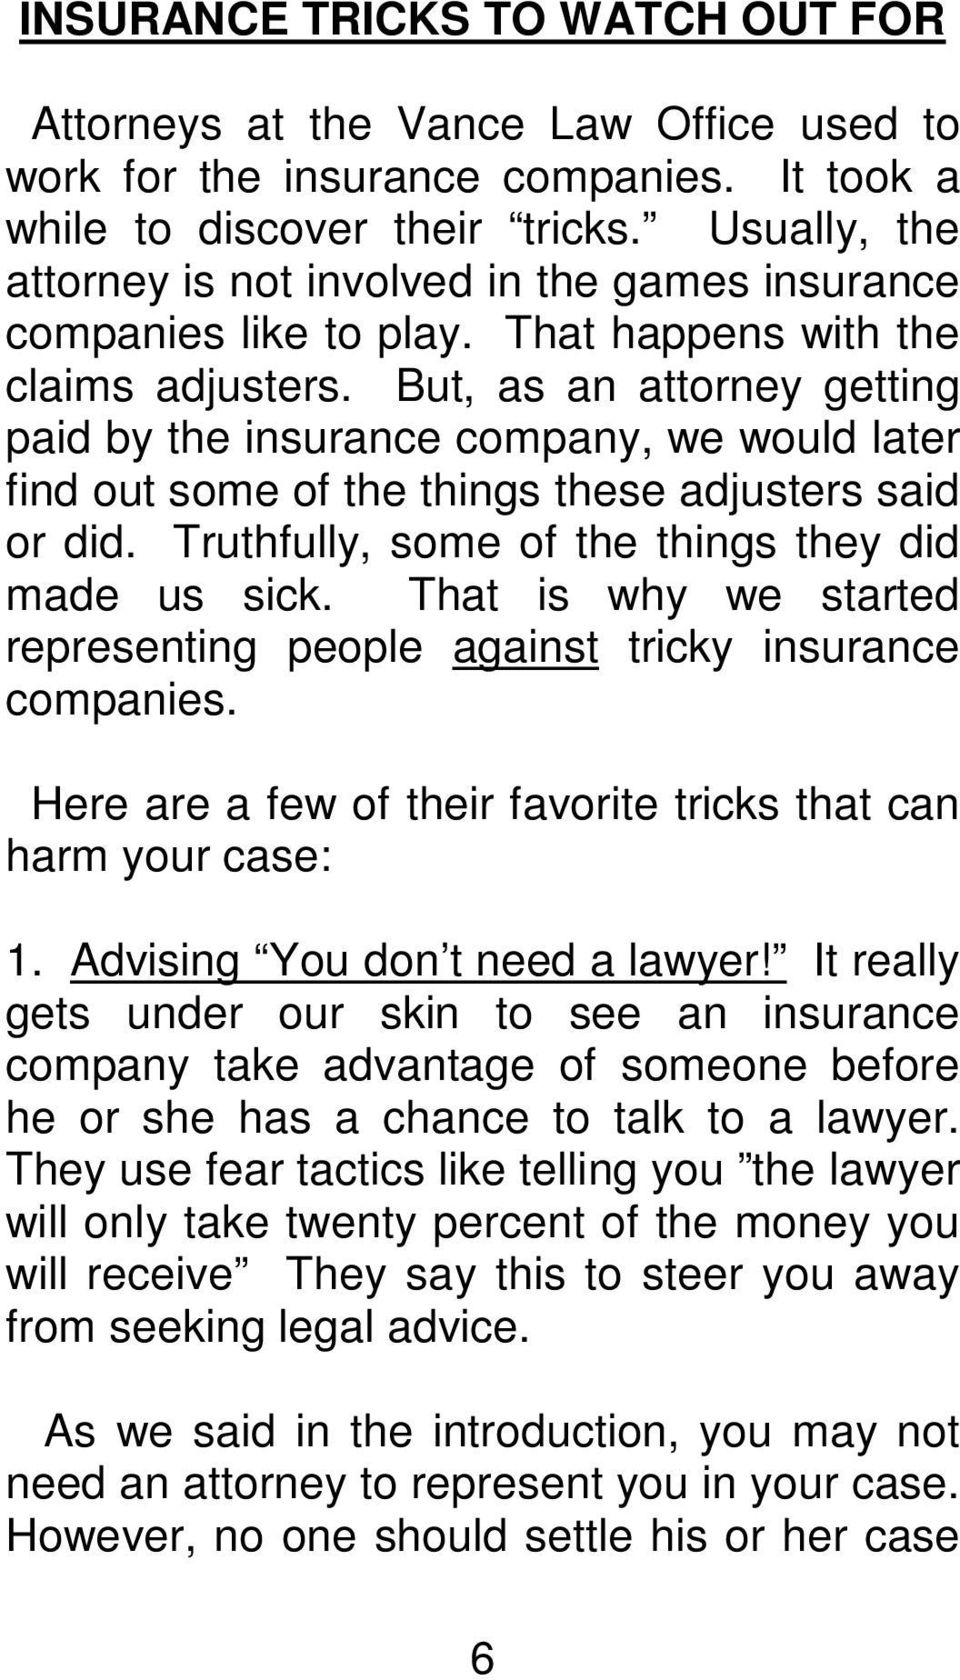 But, as an attorney getting paid by the insurance company, we would later find out some of the things these adjusters said or did. Truthfully, some of the things they did made us sick.